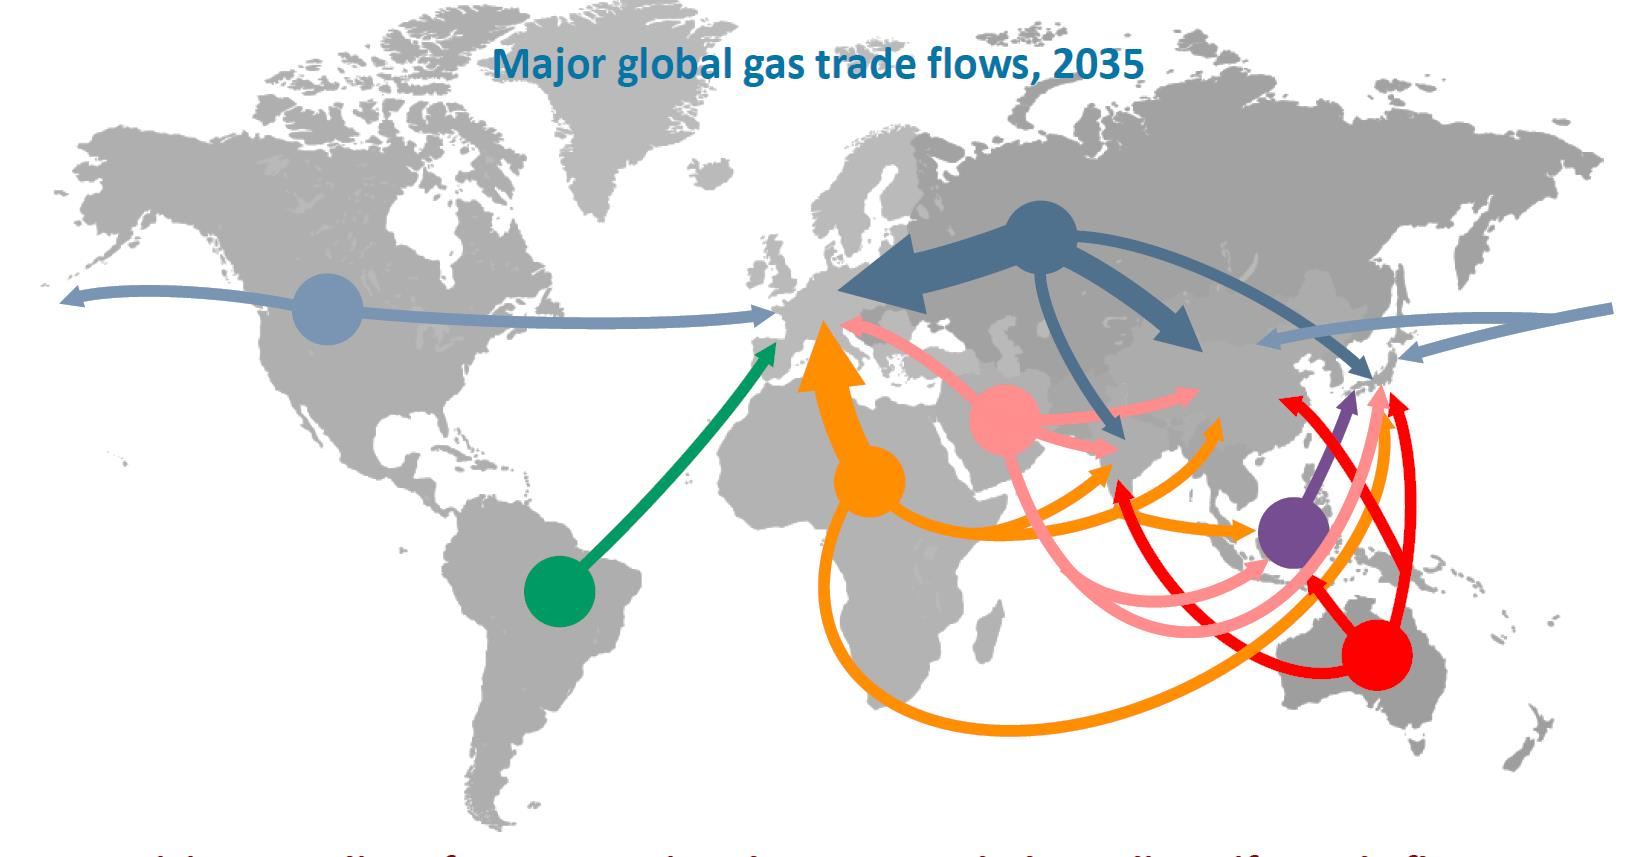 Major-global-gas-trade-flows